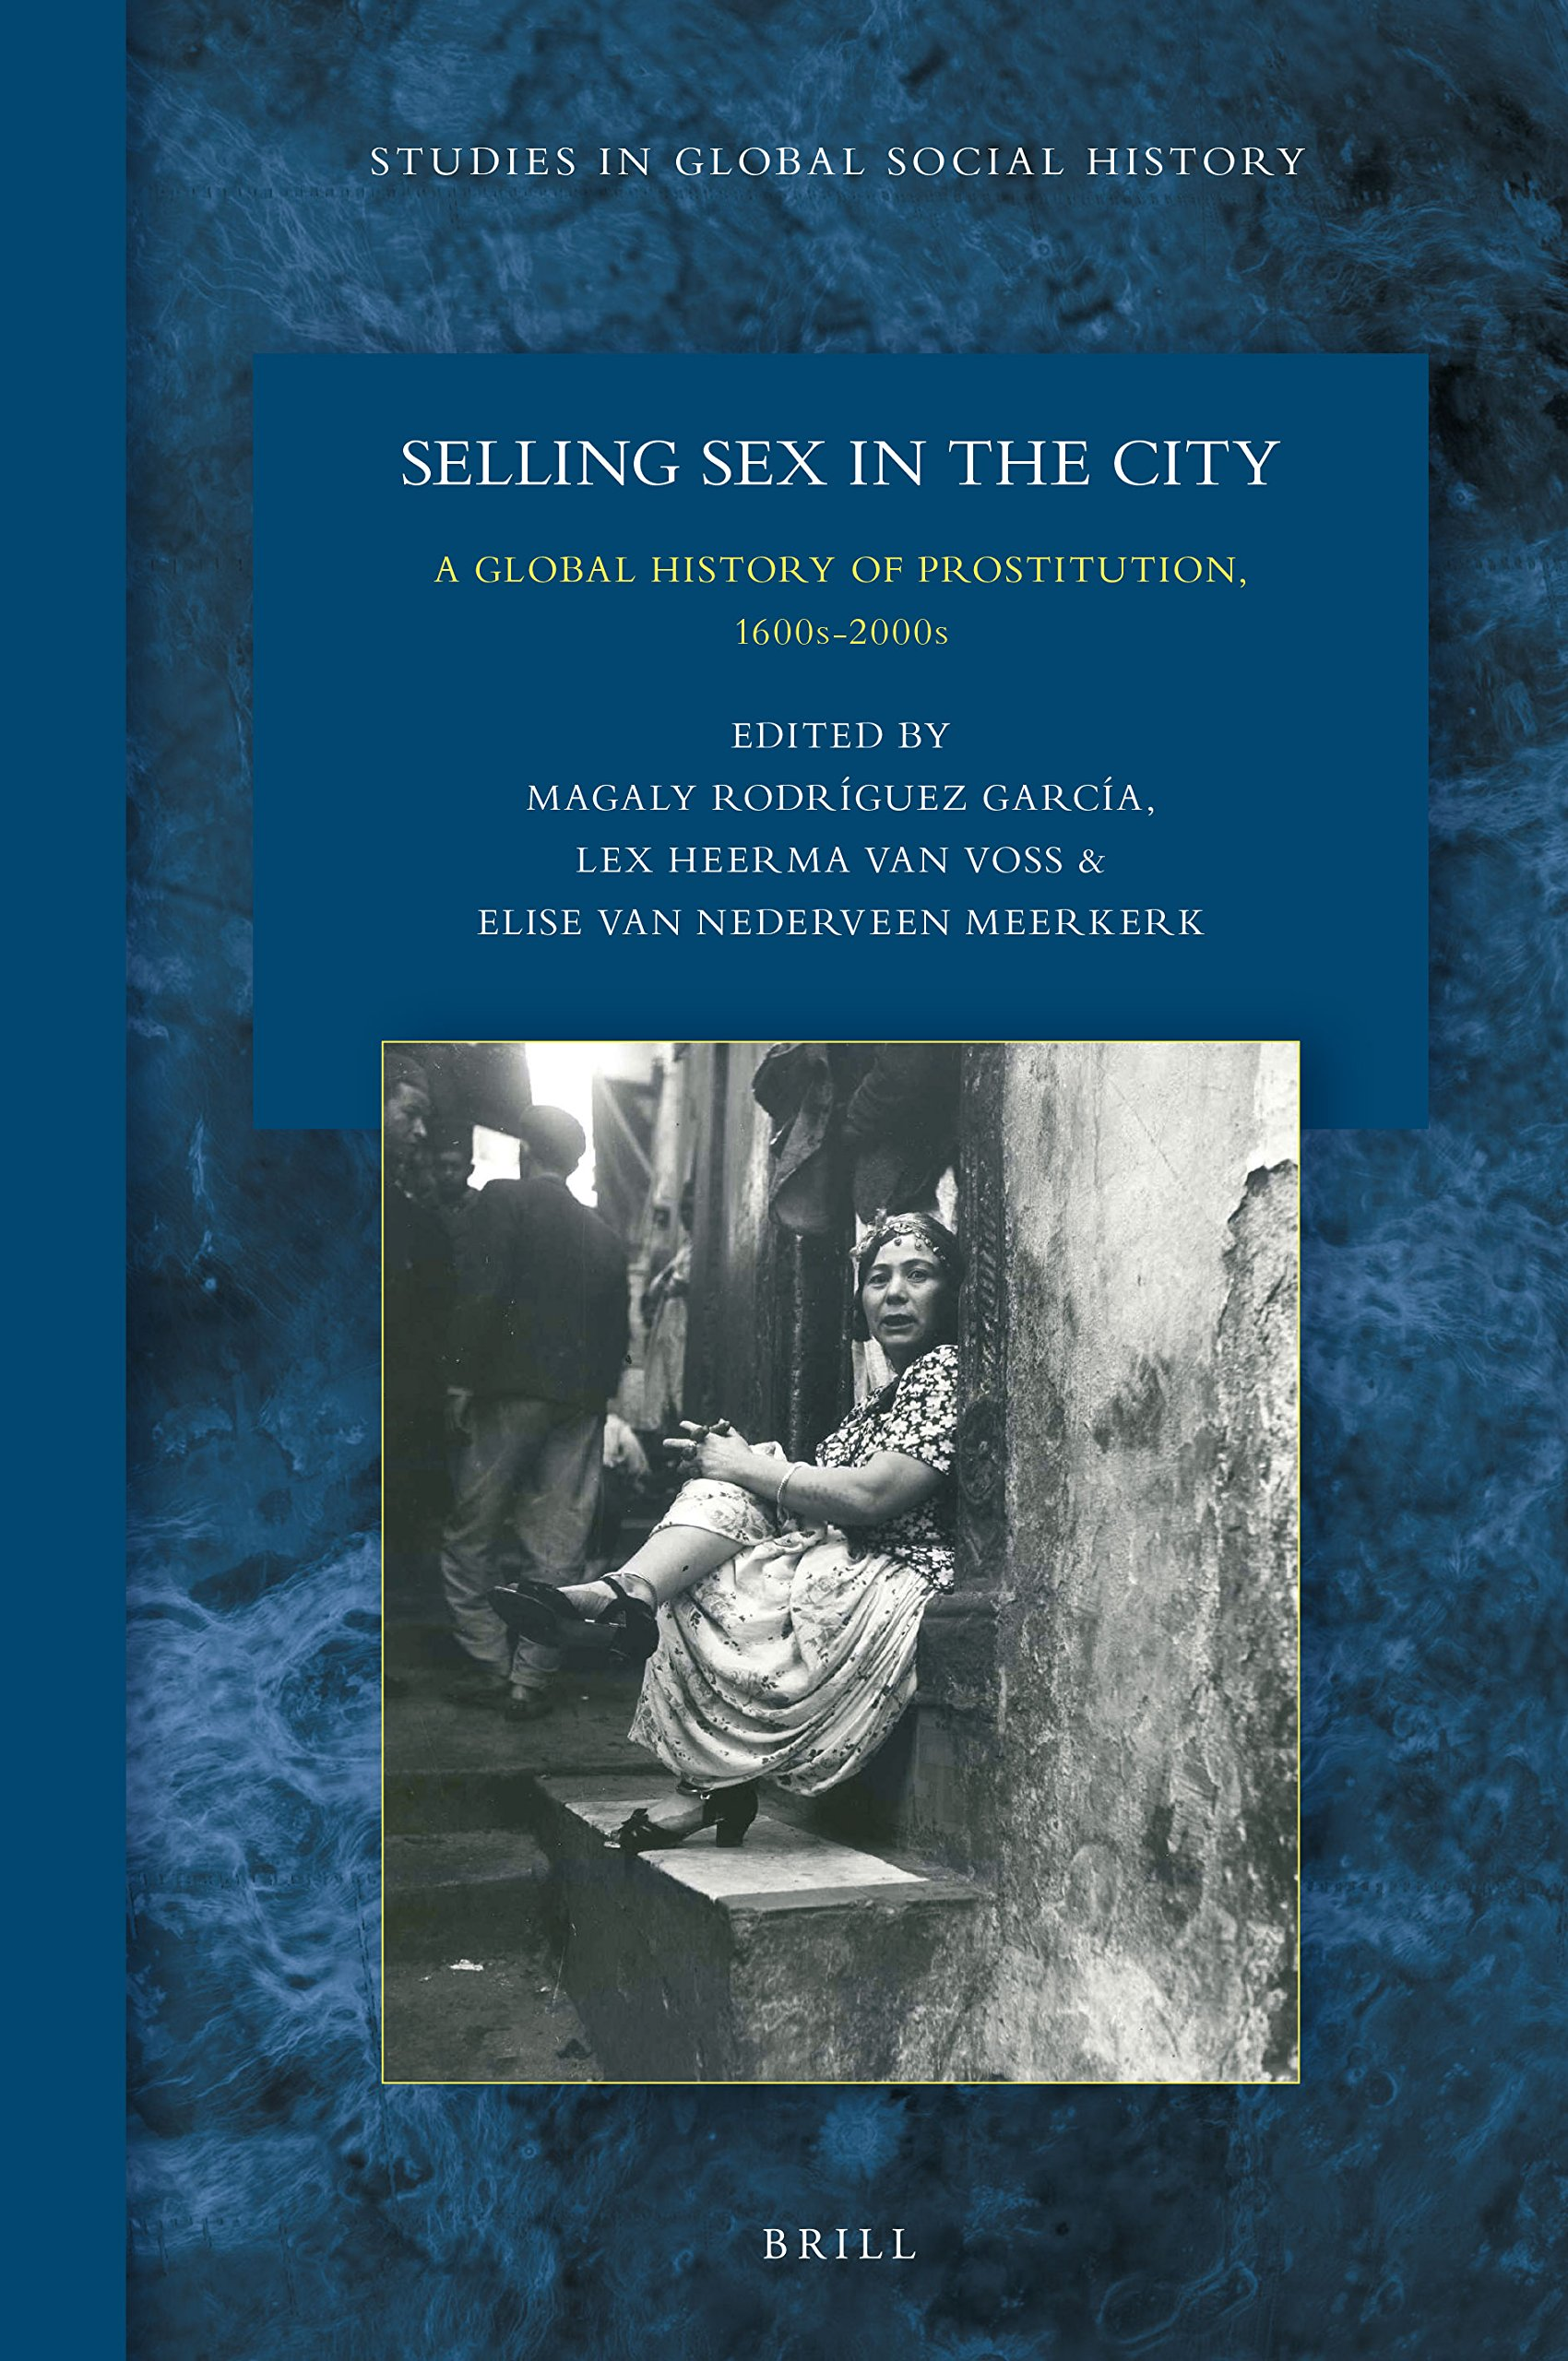 Selling Sex in the City: A Global History of Prostitution, 1600s-2000s  Hardcover – Sep 15 2017